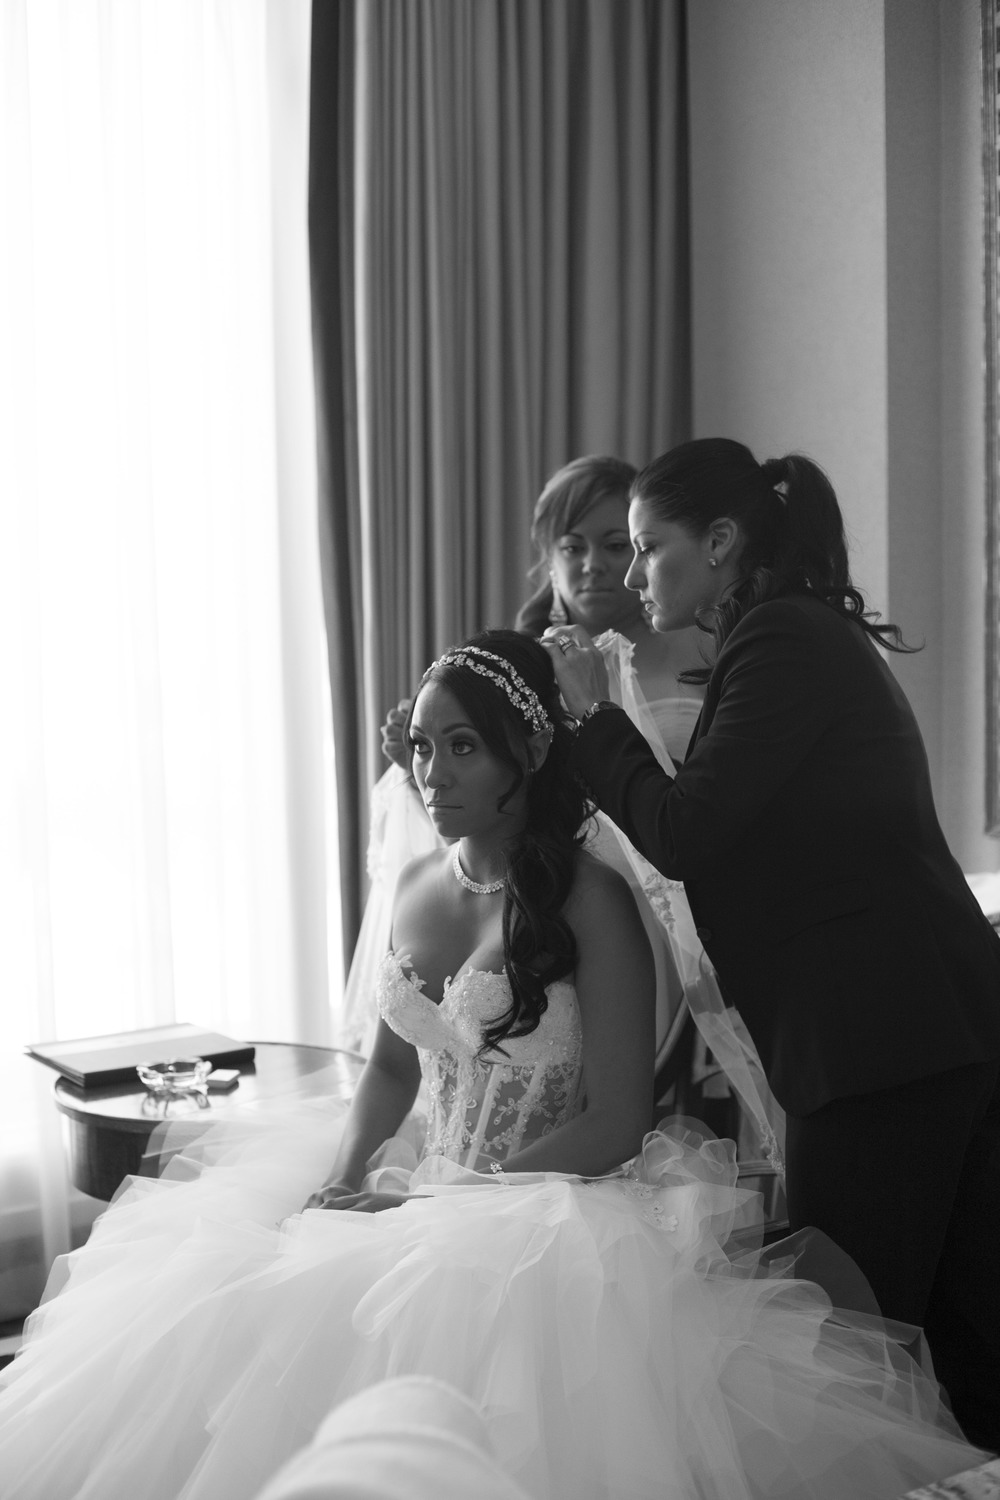 Las Vegas Wedding Planner Andrea Eppolito helps a bride get ready